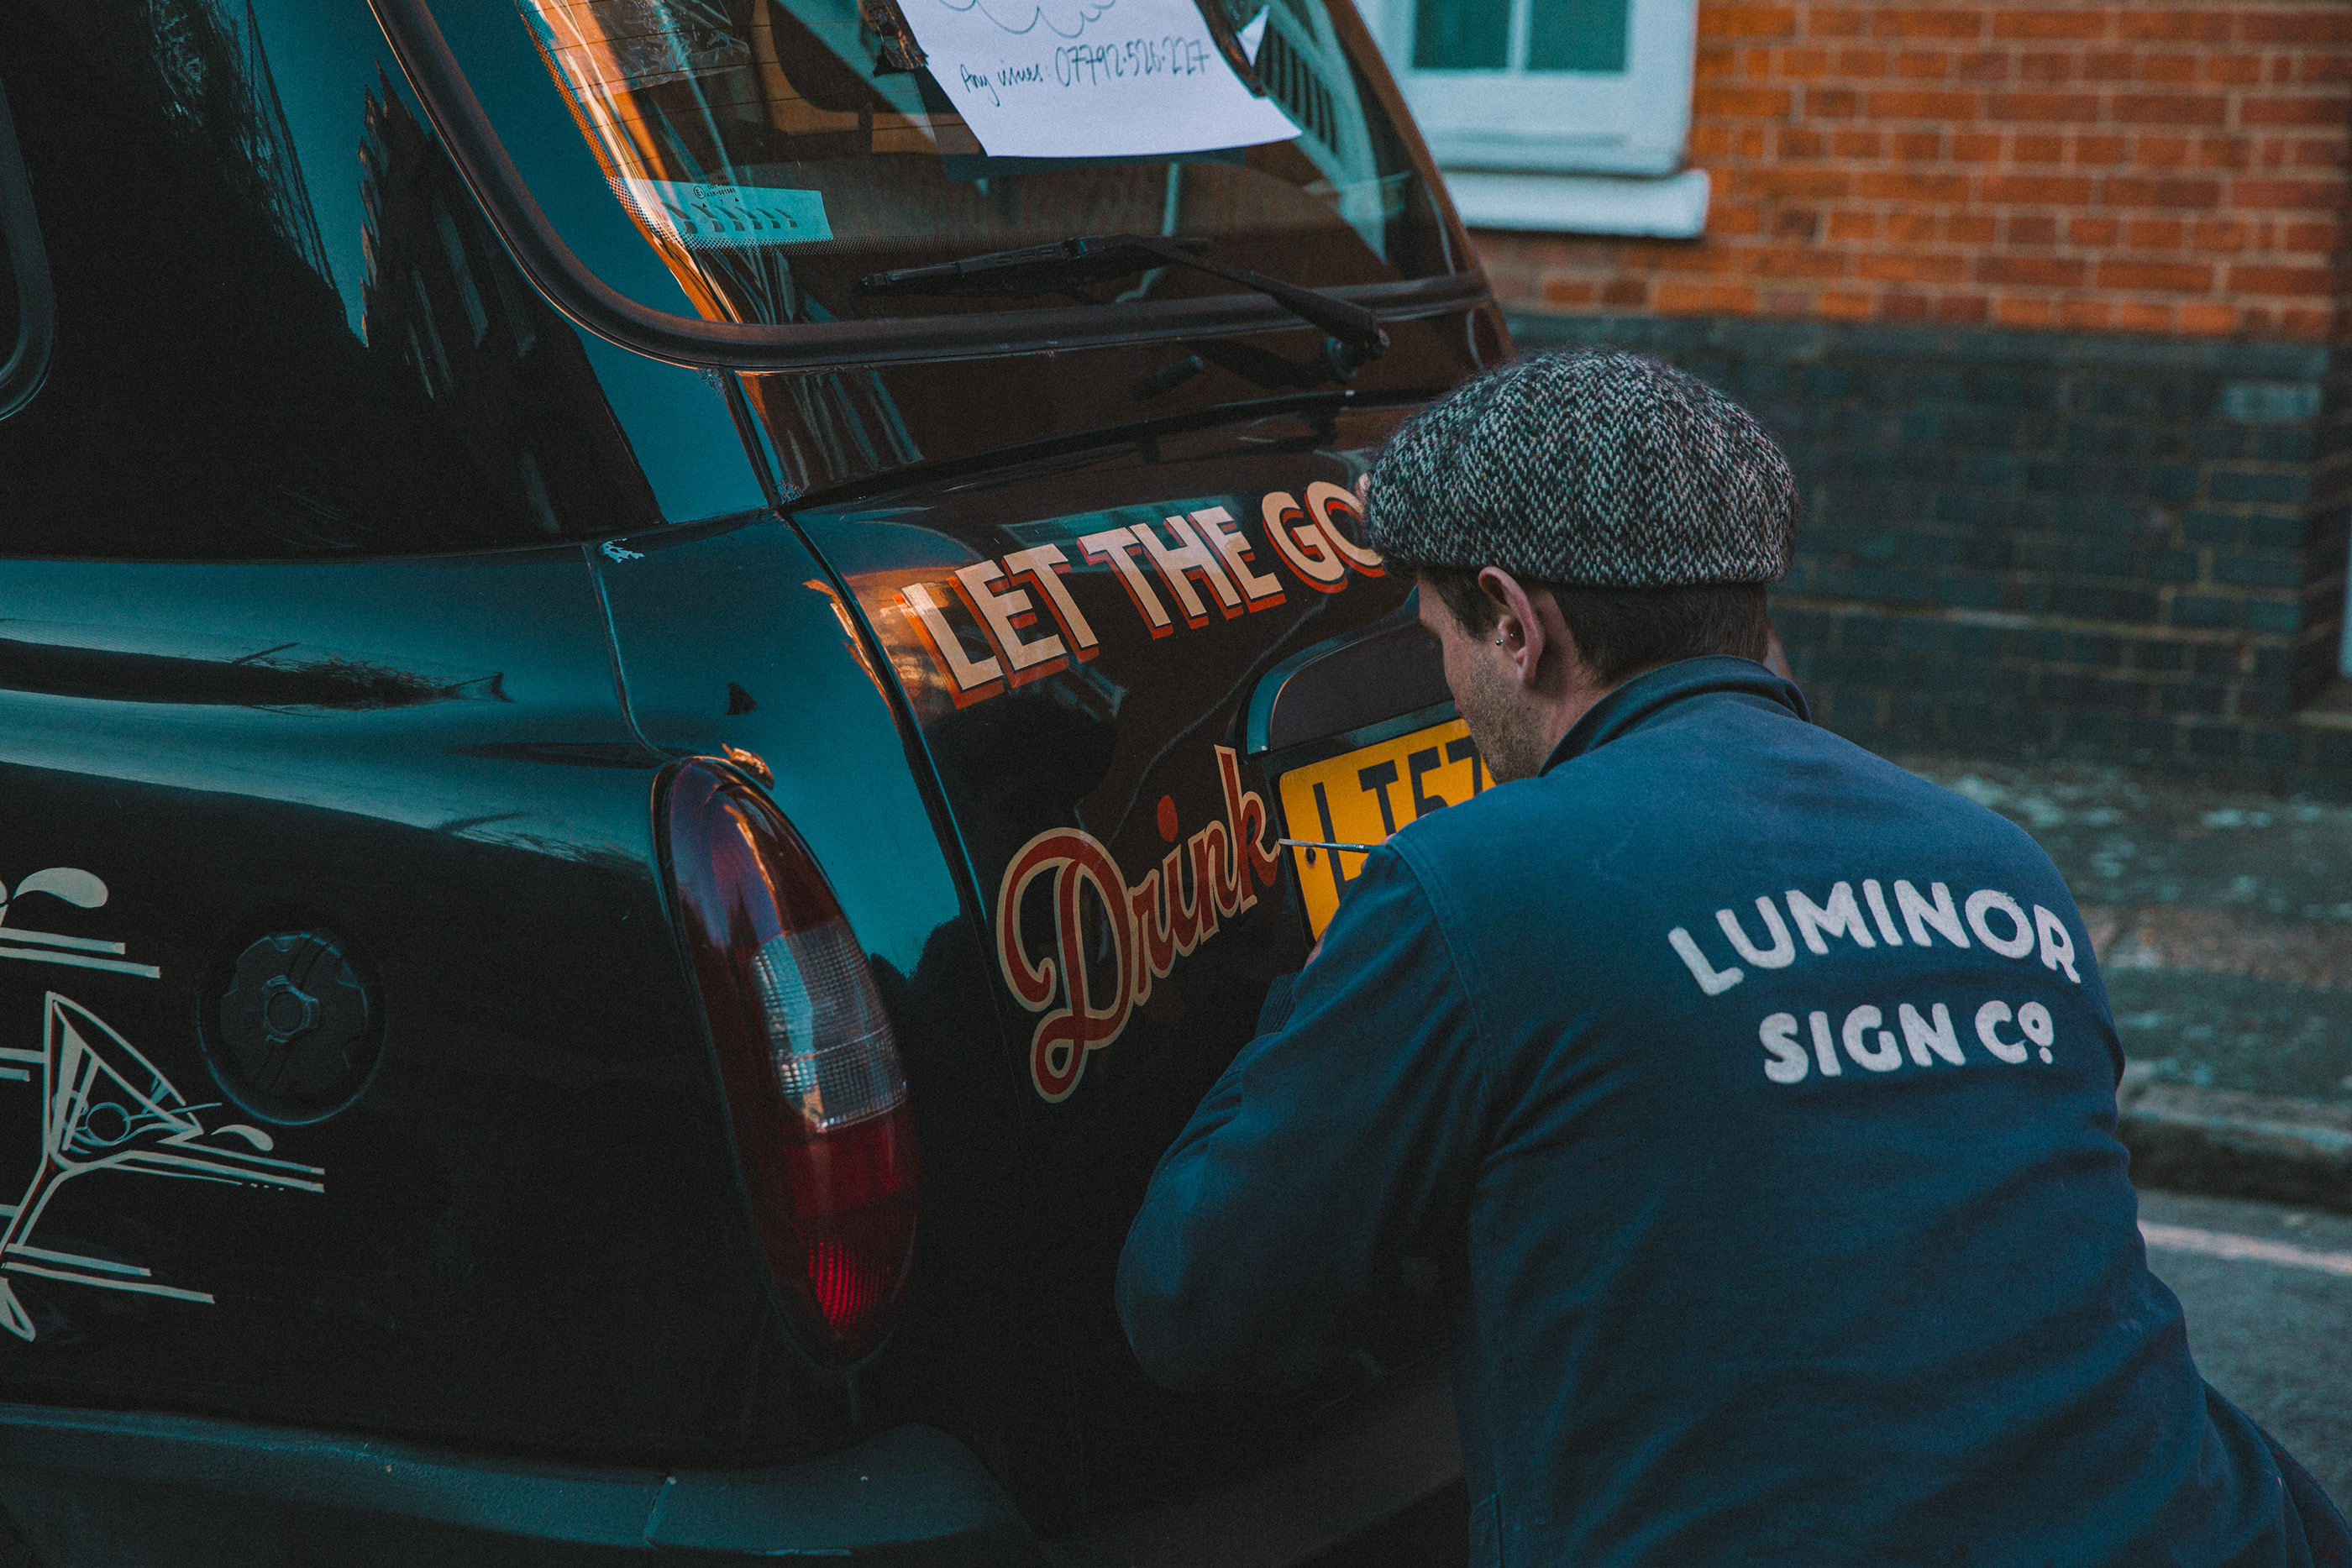 The Sherbert Dab—handmade sign painting and lettering by The Luminor Sign Co.